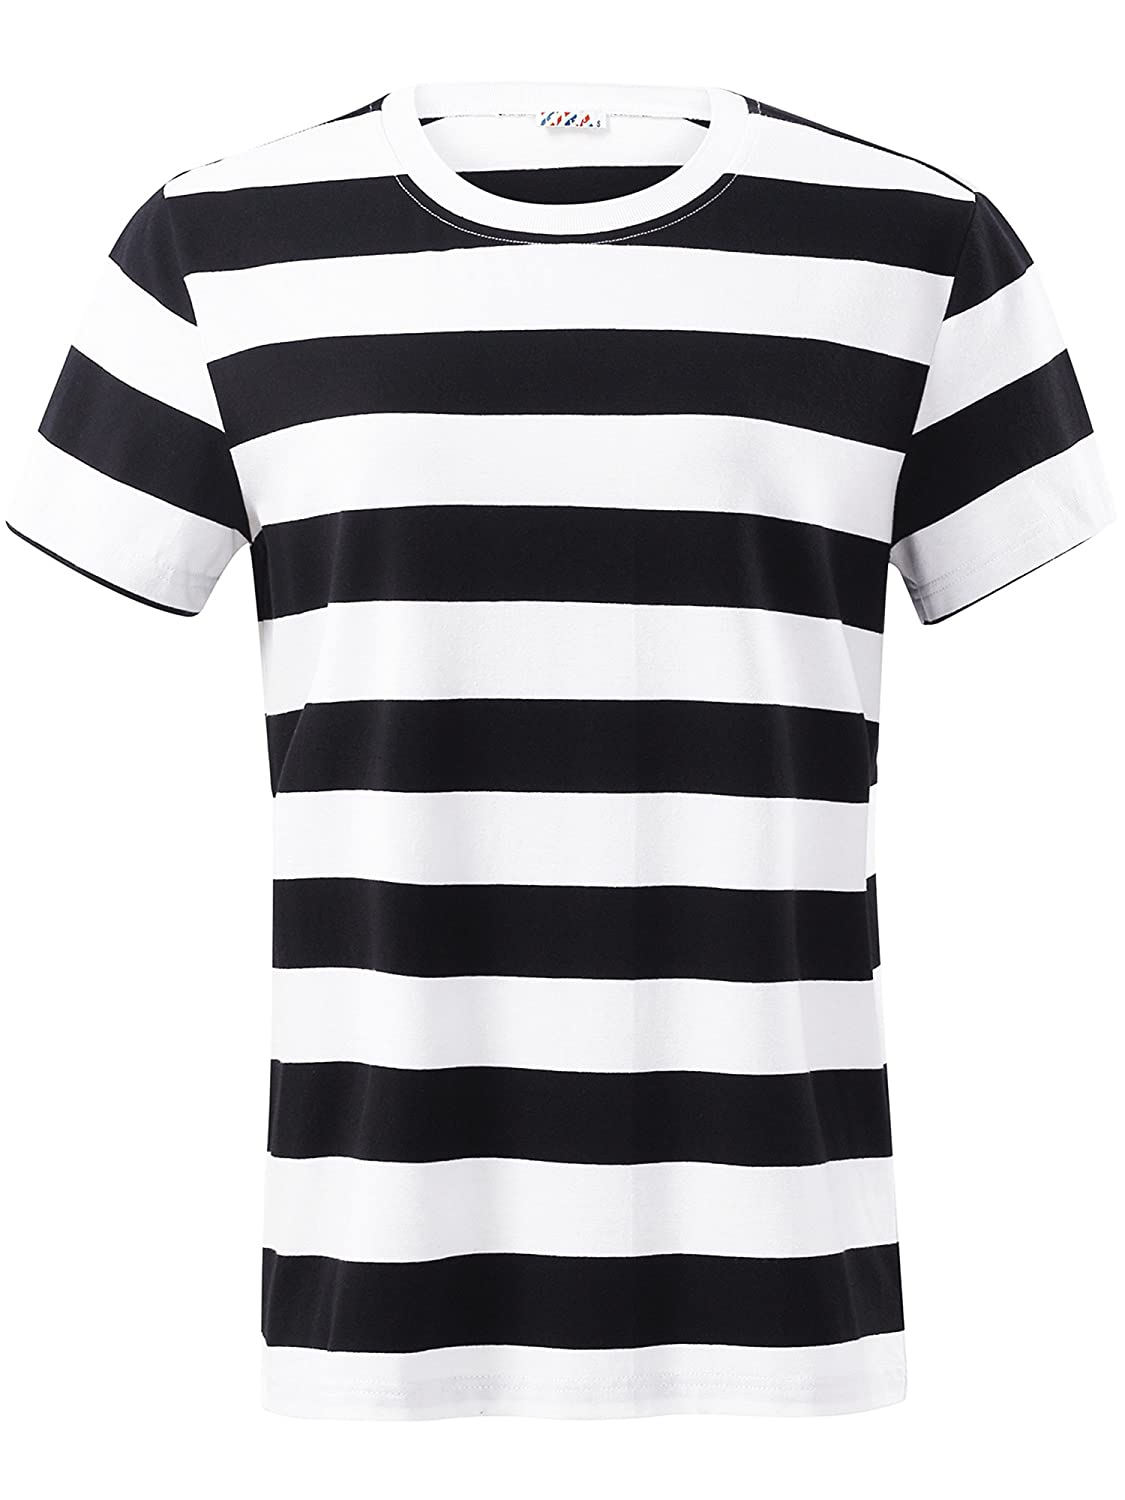 68914e1bad Cotton T-Shirts,Soft Fabric,Breathable Wheres Waldo Costume & Odlaw  costume. Funny Adult Costumes,Wheres Waldo Outfit,Group Costumes Adult